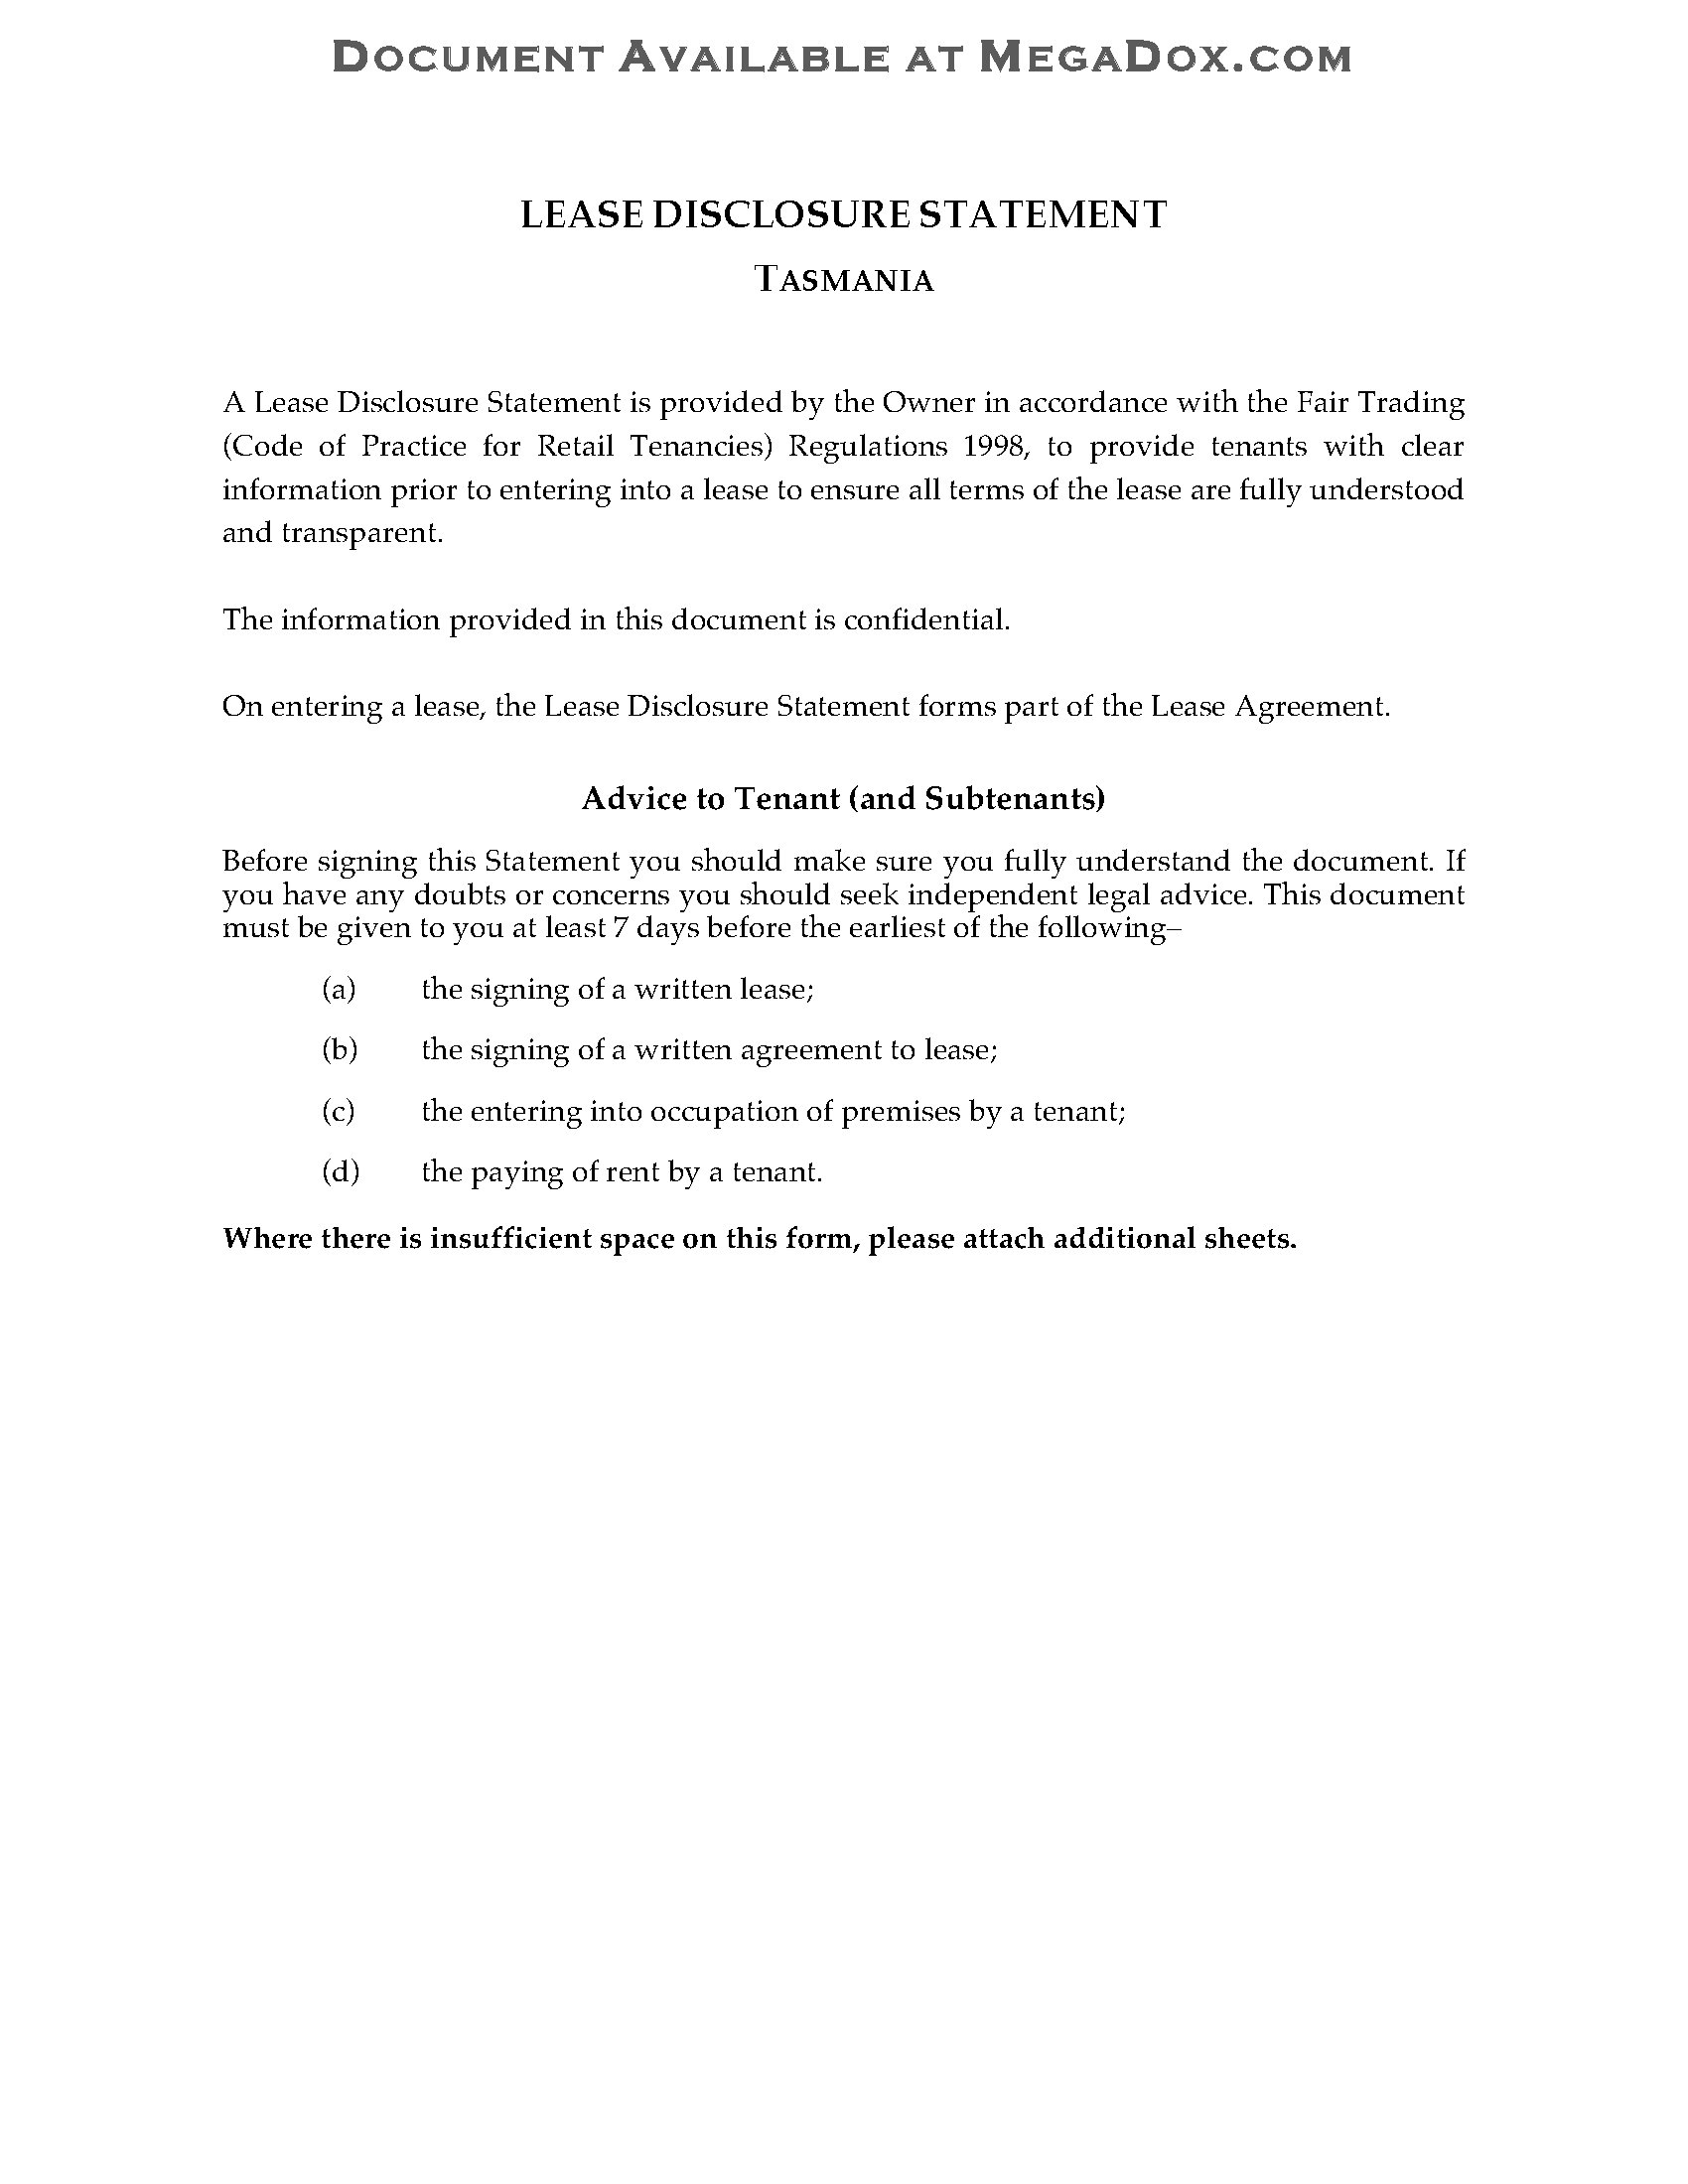 Tasmania Lease Disclosure Statement Legal Forms And Business